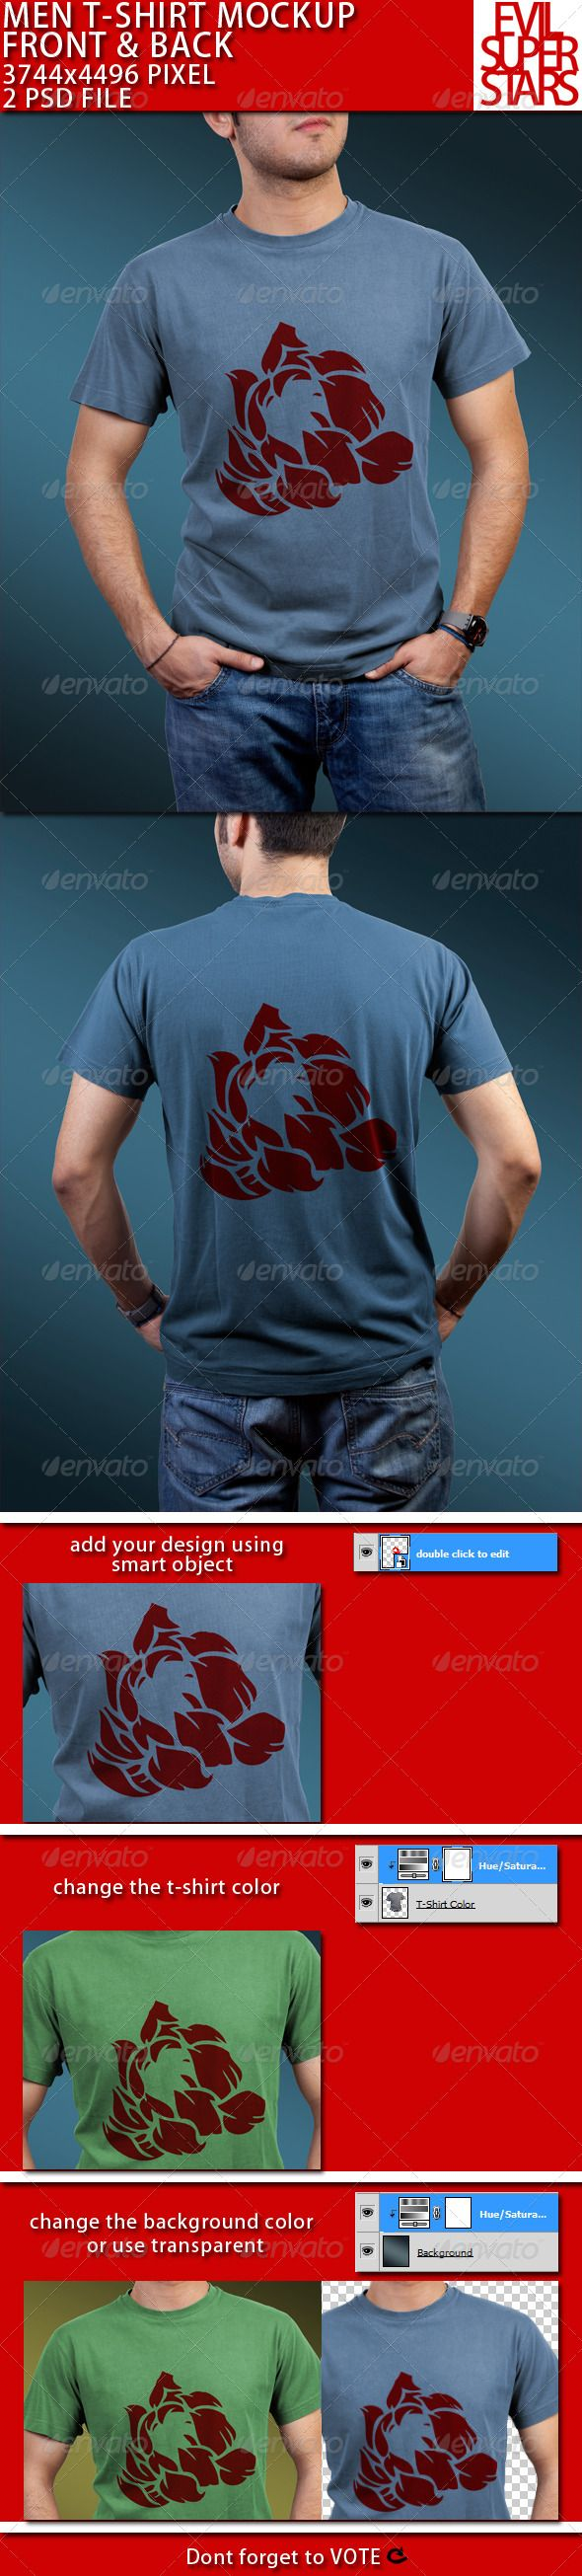 Scalable t shirt mockups more info - T Shirt Mock Up Male